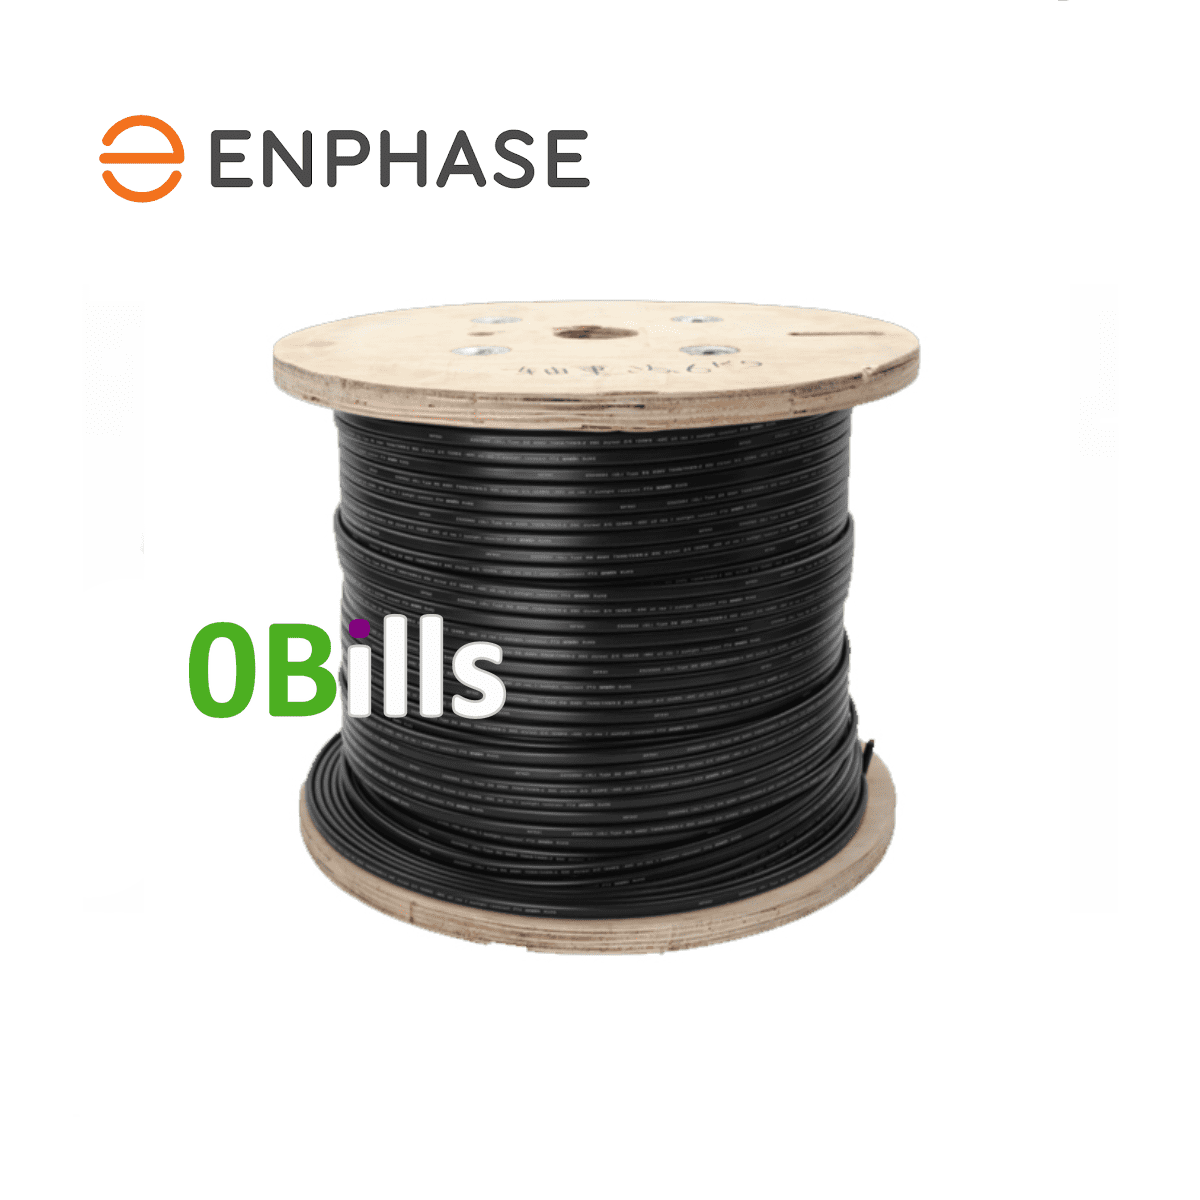 Enphase 240VAC Single Phase Raw Trunk Cable